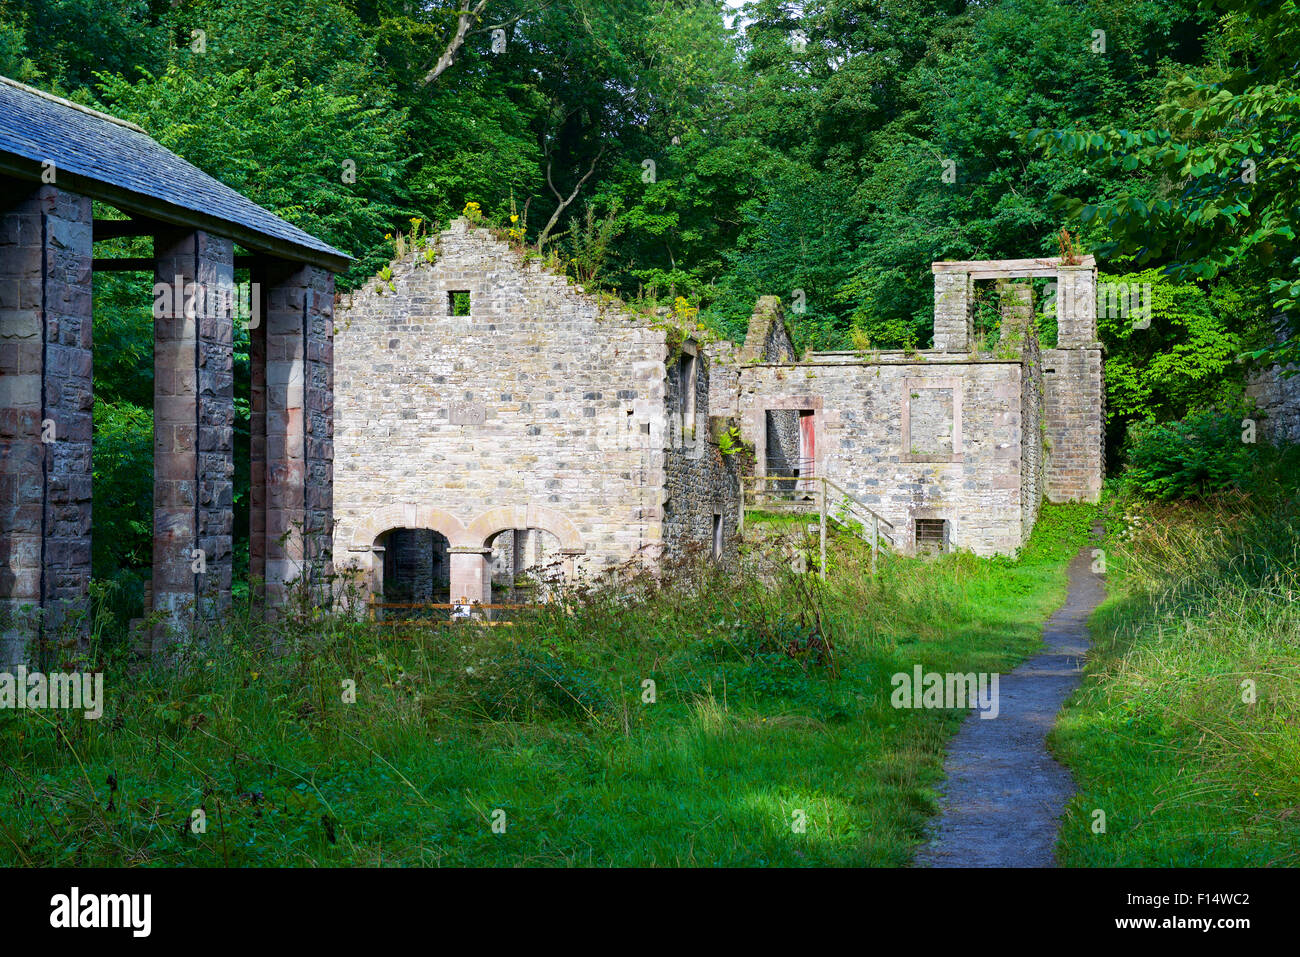 Ruins of the bobbin mill at the Howk, near the village of Caldbeck, Lake District National Park, Cumbria, England - Stock Image